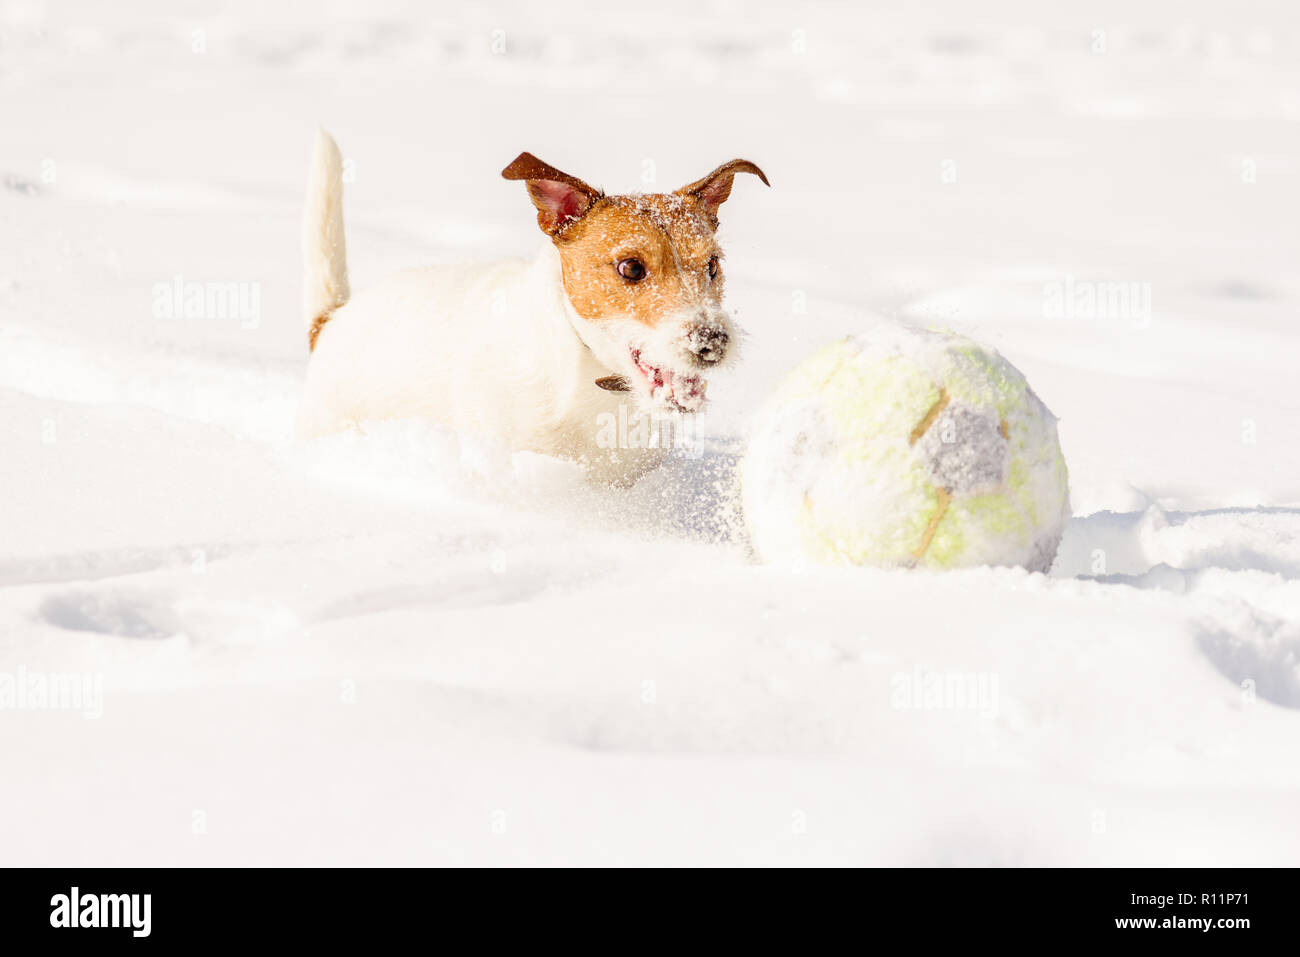 Cute dog running chasing football (soccer) ball in deep snow - Stock Image